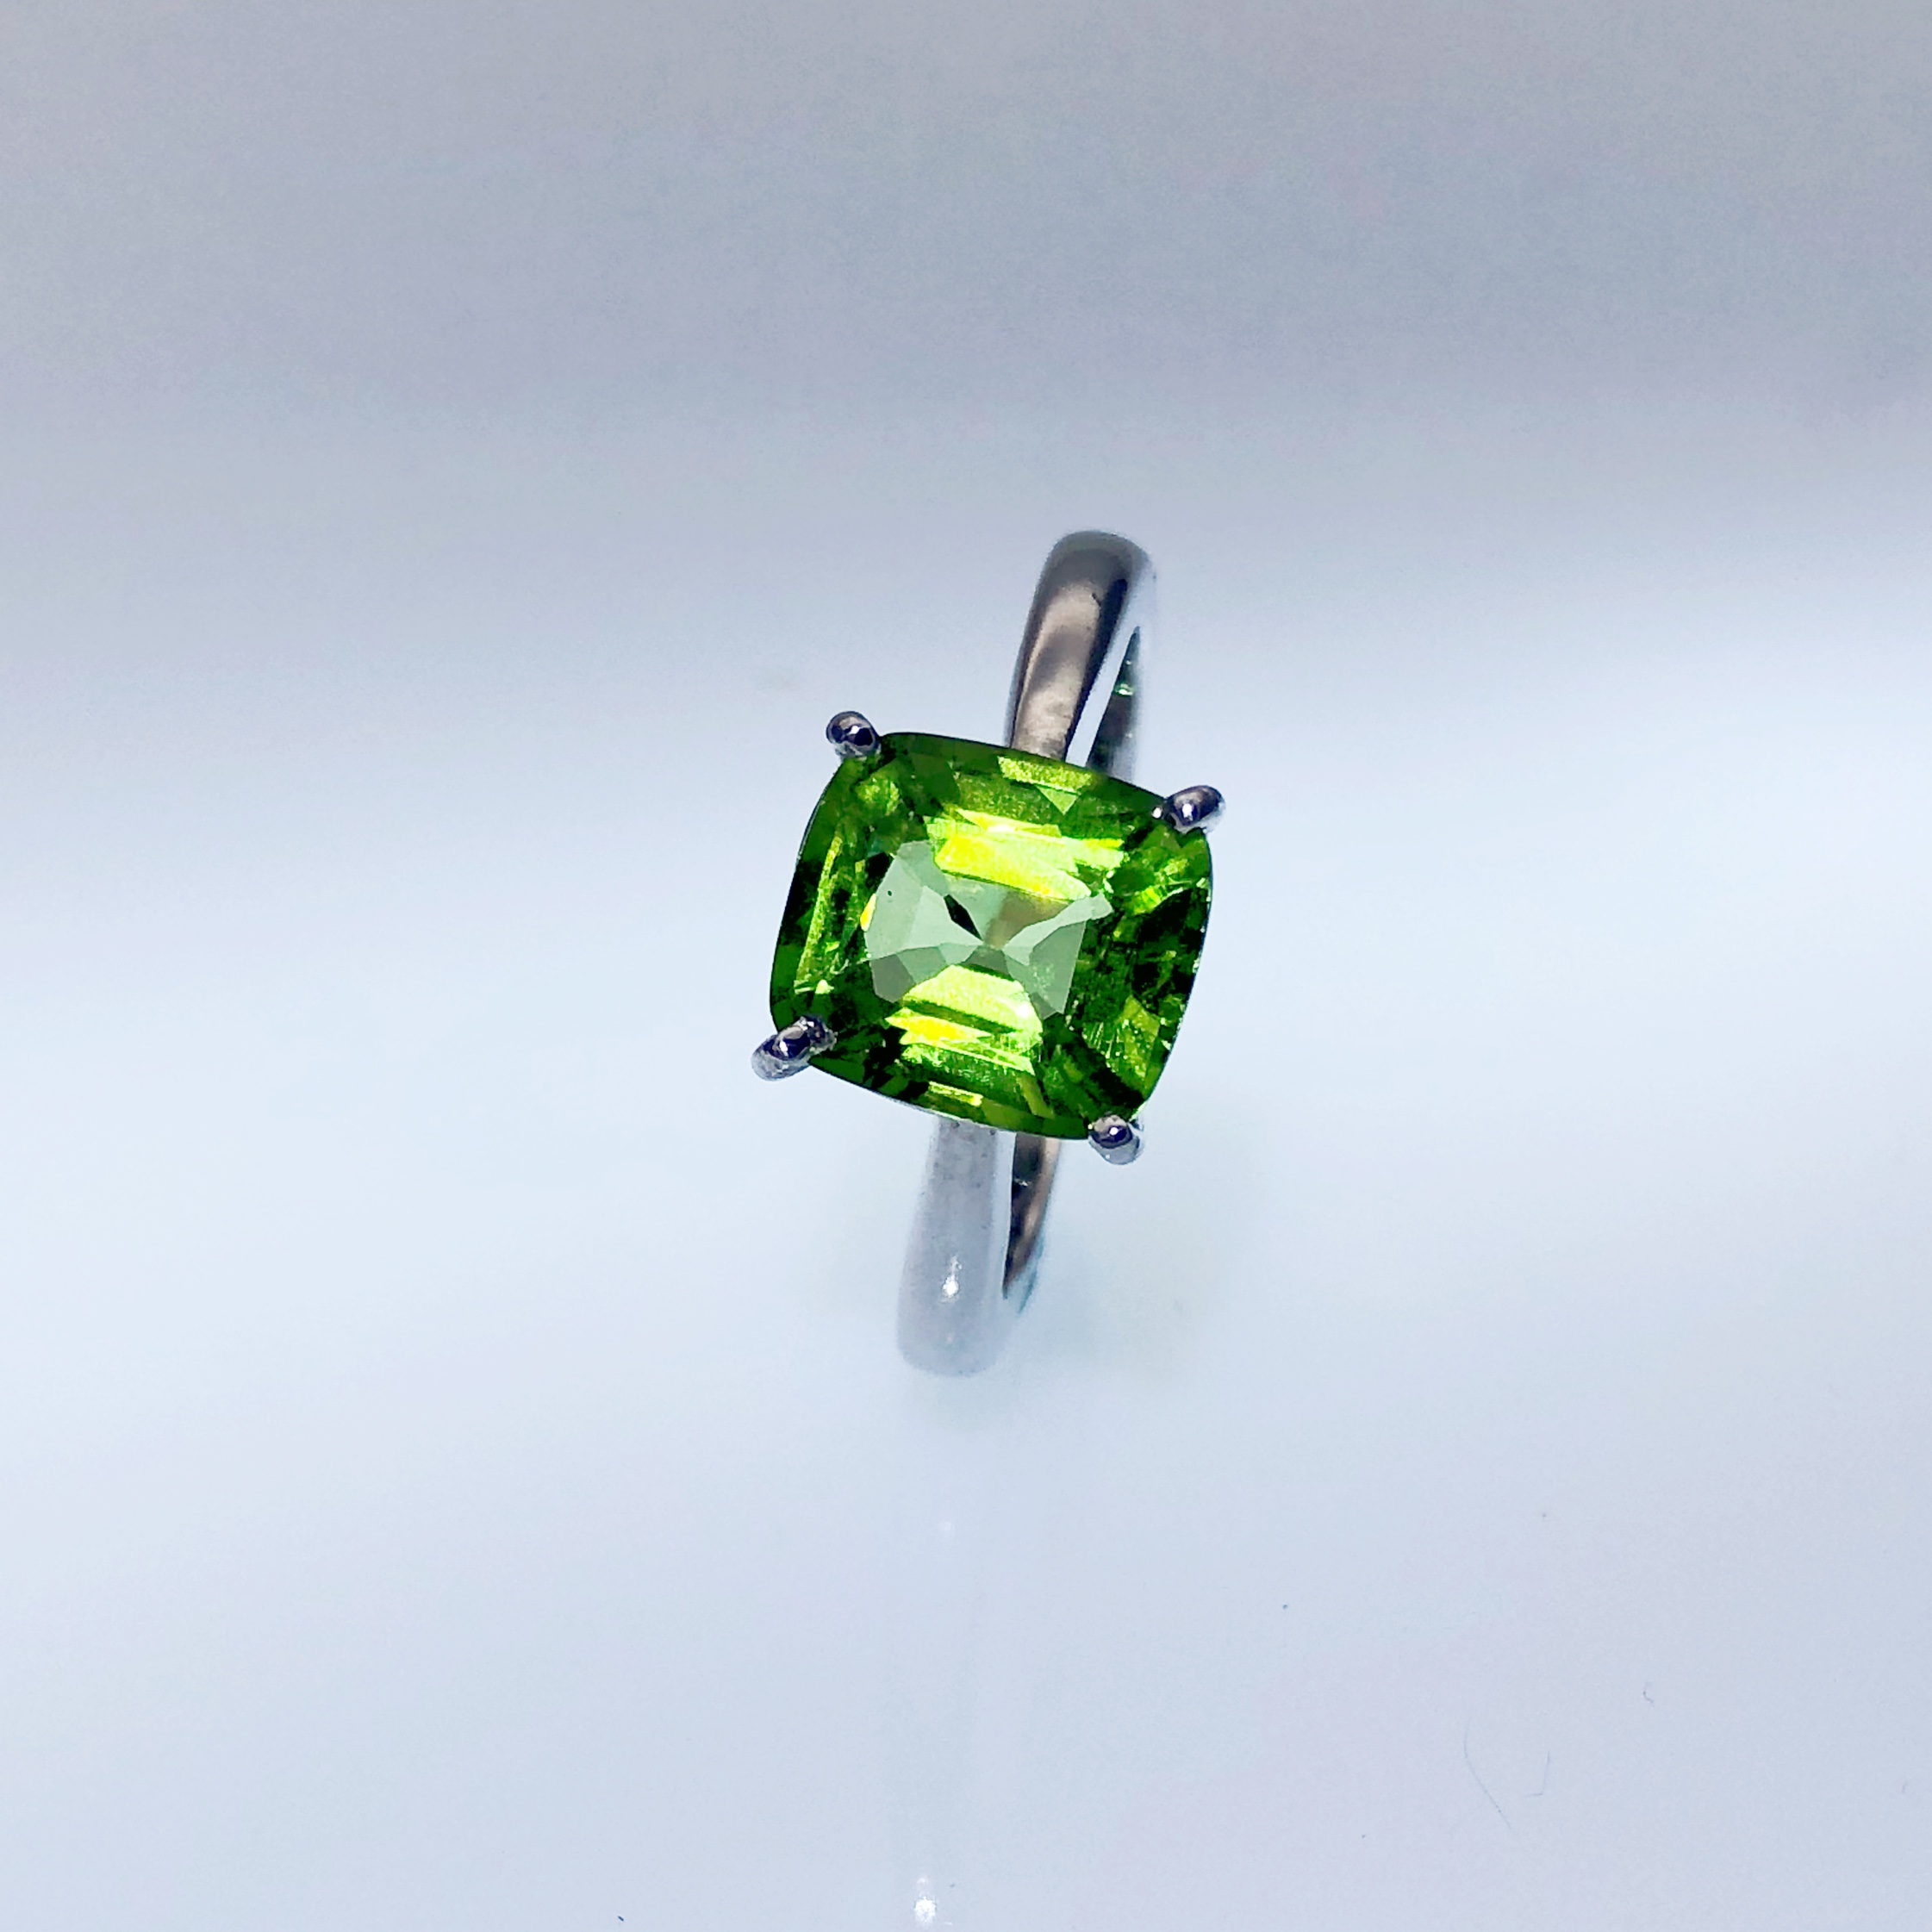 Peridot - Peridot gemstones have been found in a large number of locations, including Brazil, Pakistan, Australia, Ireland, Russia, Sri Lanka, USA and Egypt.This is the gem quality stone of Forsterite Olivine, and it is a beautiful transparent, green colored stone. Hence its ancient name Olivine, although the color may range from a light yellow green or lime green color through to the darker olive green shade, including a brownish green.Taking into consideration the amount of time that this stone has been in use, it has only been known by this name for around two hundred years.The meaning of the name Peridot comes from the French word 'peritot' which is believed to come from an Arabic word 'faridat', which means precious stone.It has also been called names such as 'Peles tears'.Source: www.healing-crystals-for-you.com